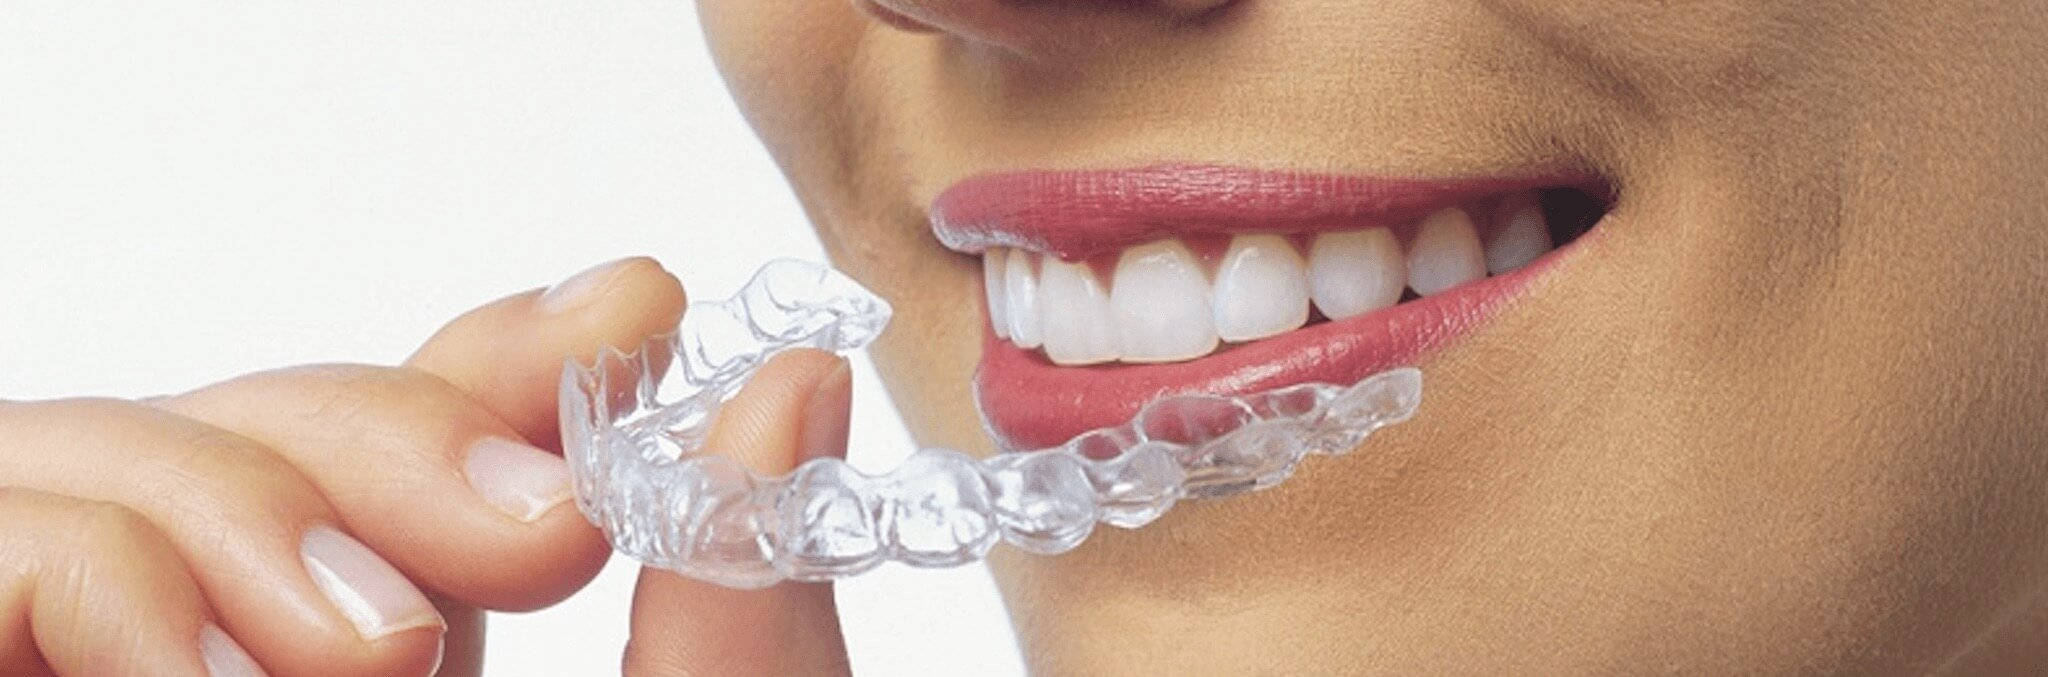 invisalign2 Invisalign and Invisalign Teen in Spanish Fort, AL  - Braces in Spanish Fort, Alabama - McMurphy Orthodontics, Spanish Fort Braces